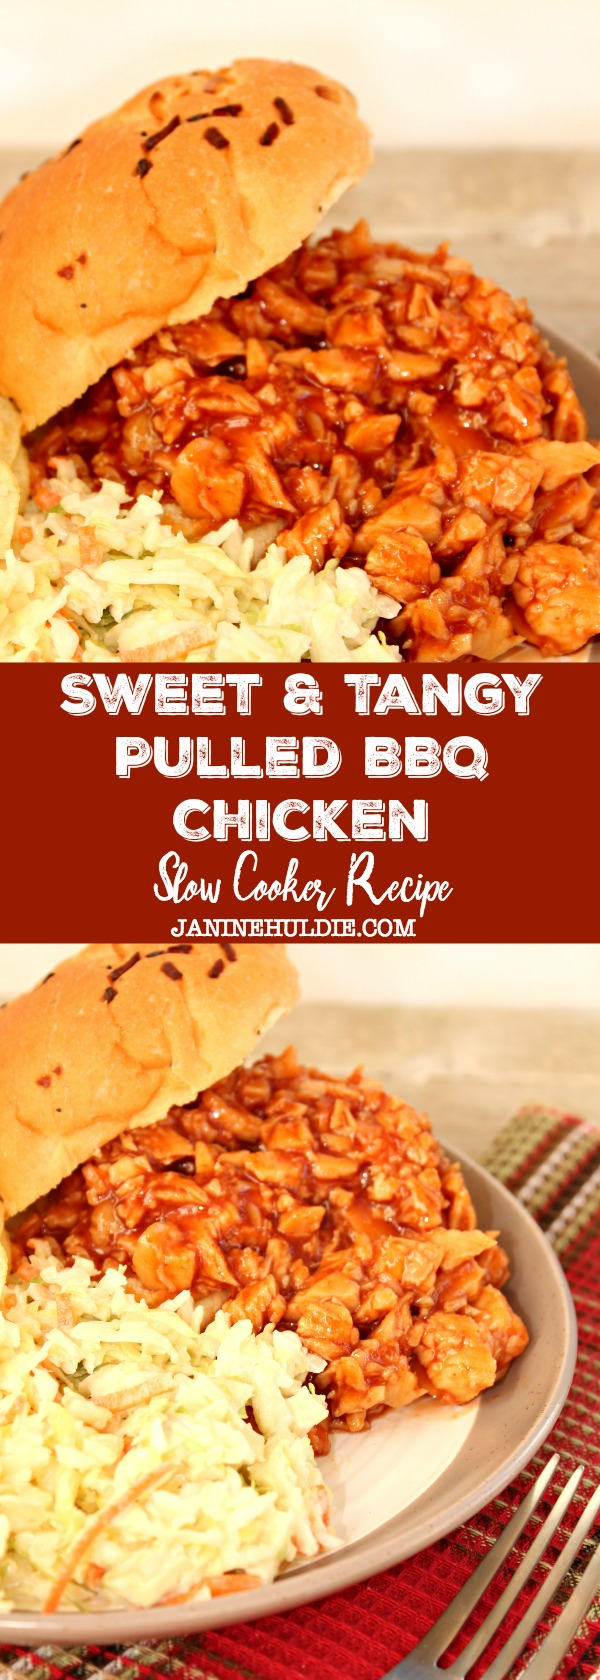 Sweet and Tangy Pulled BBQ Chicken Recipe